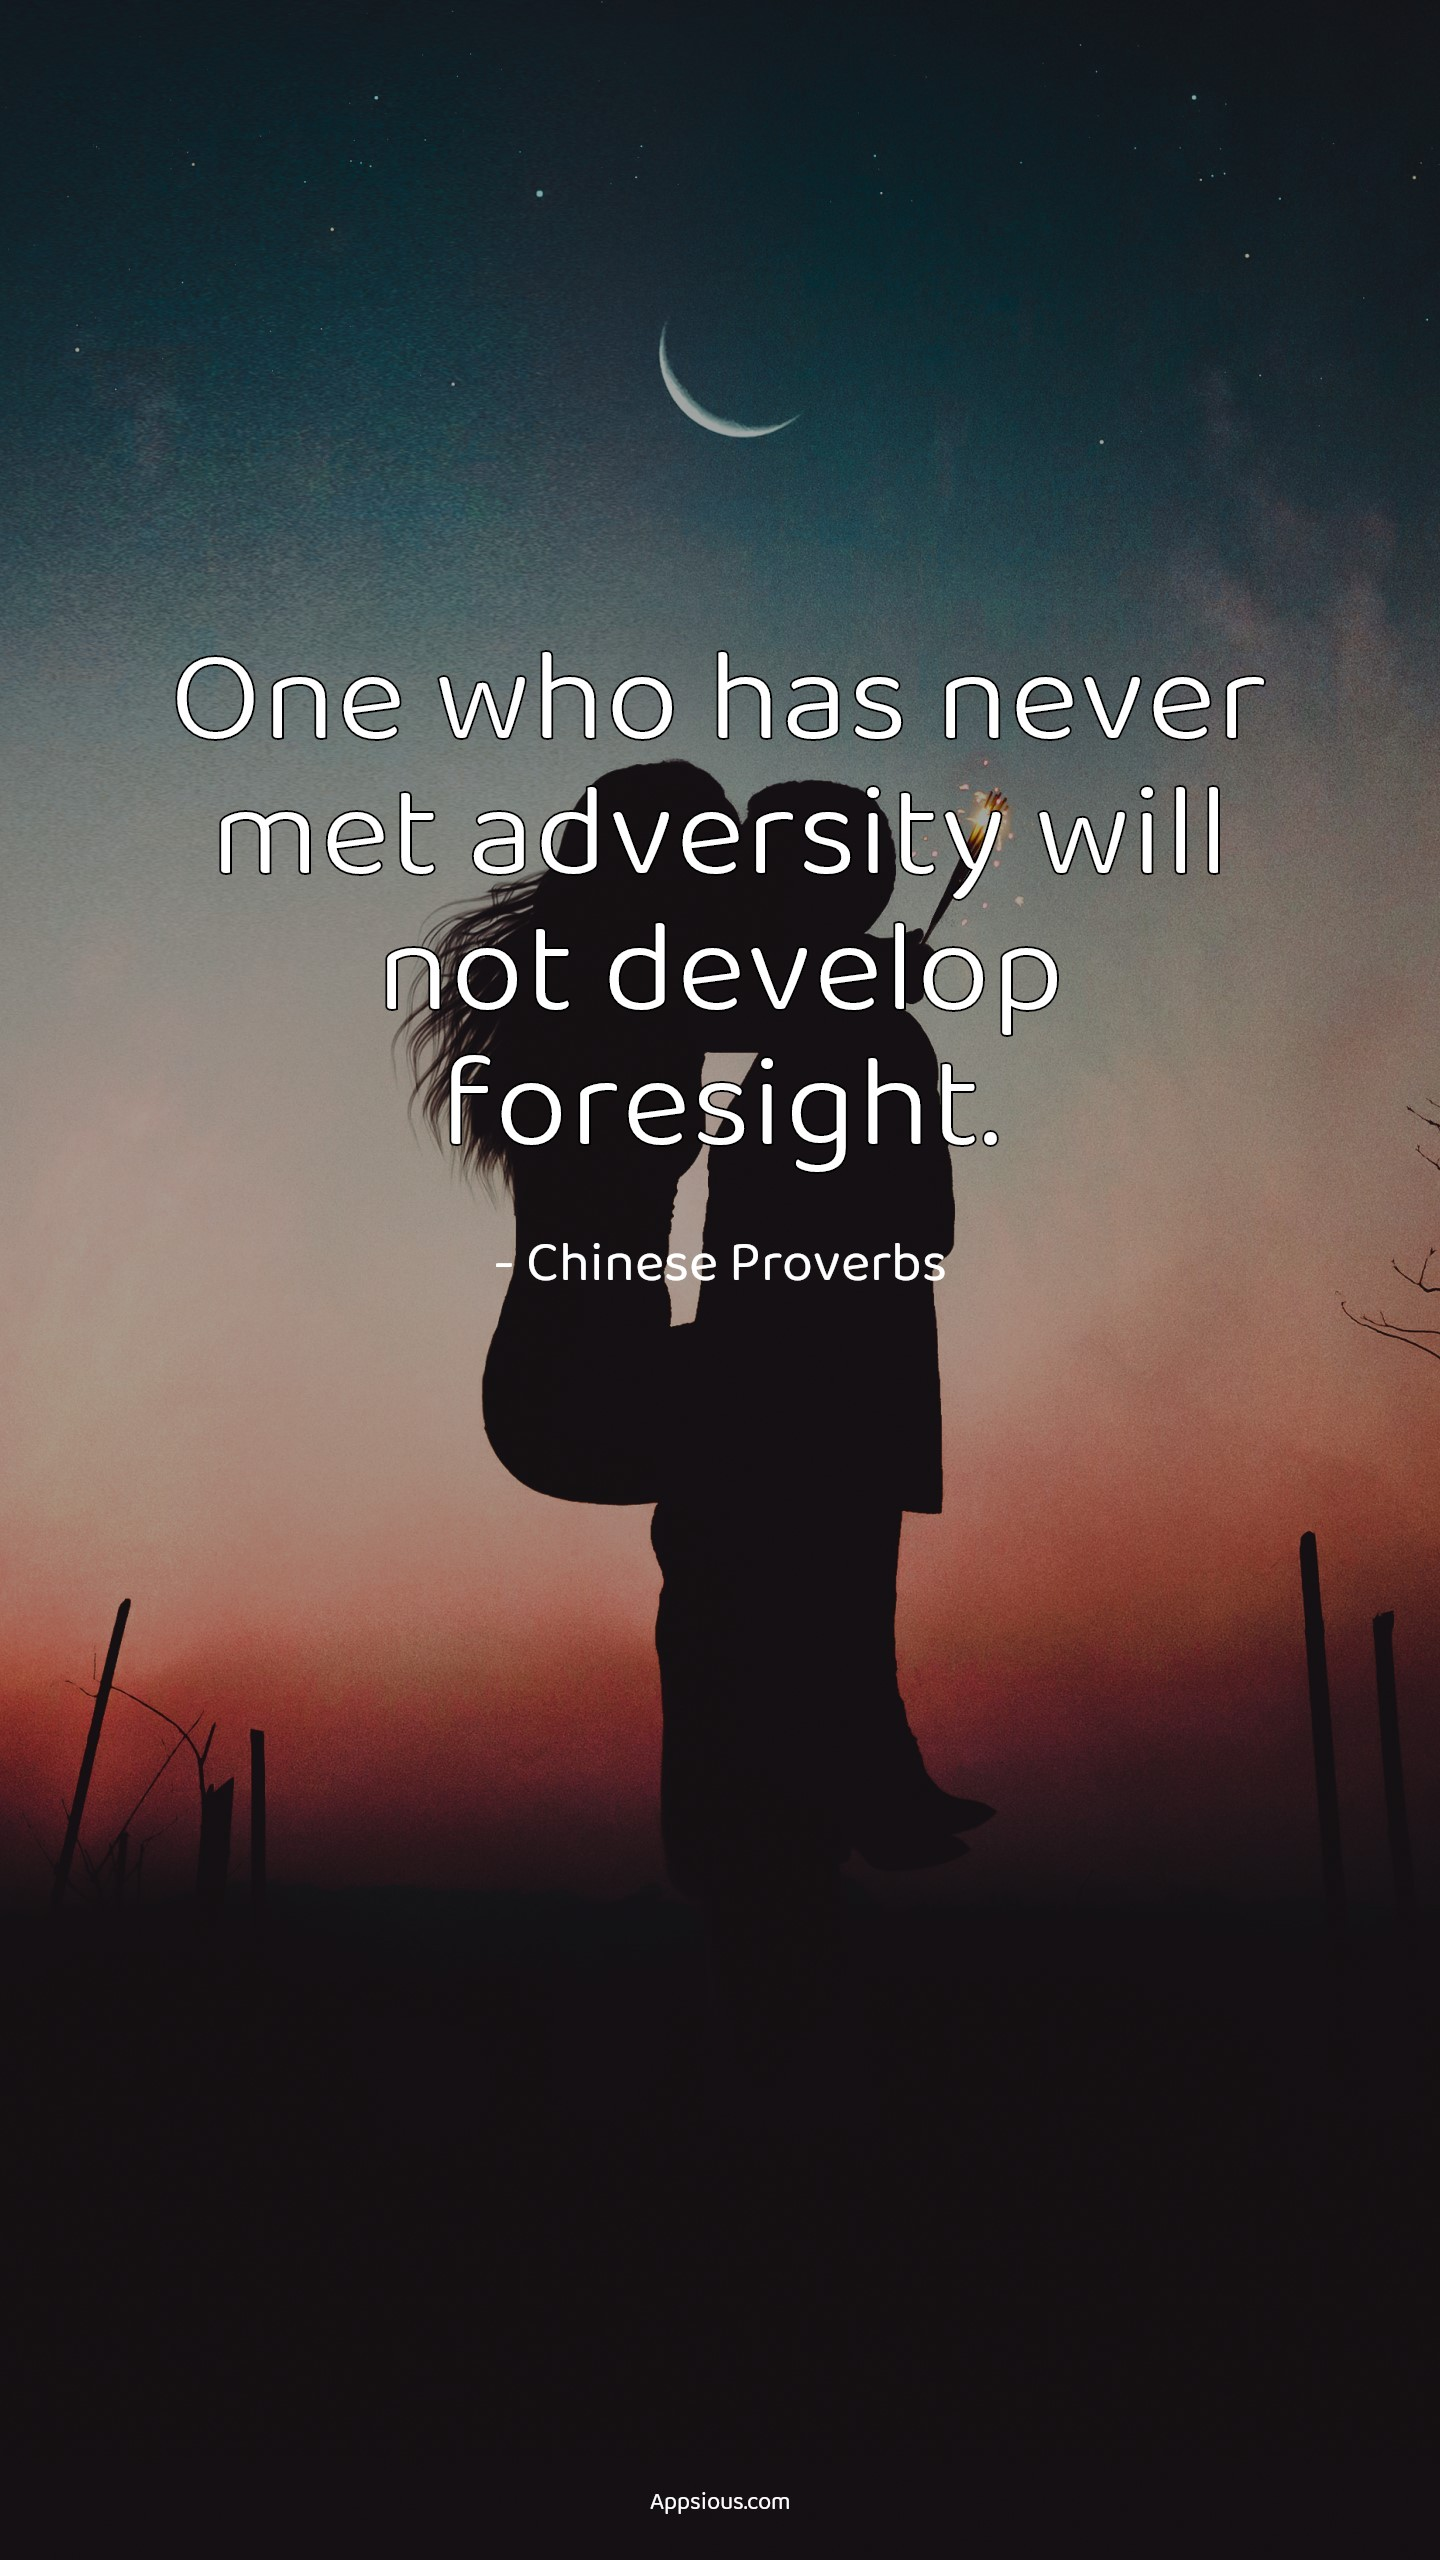 One who has never met adversity will not develop foresight.